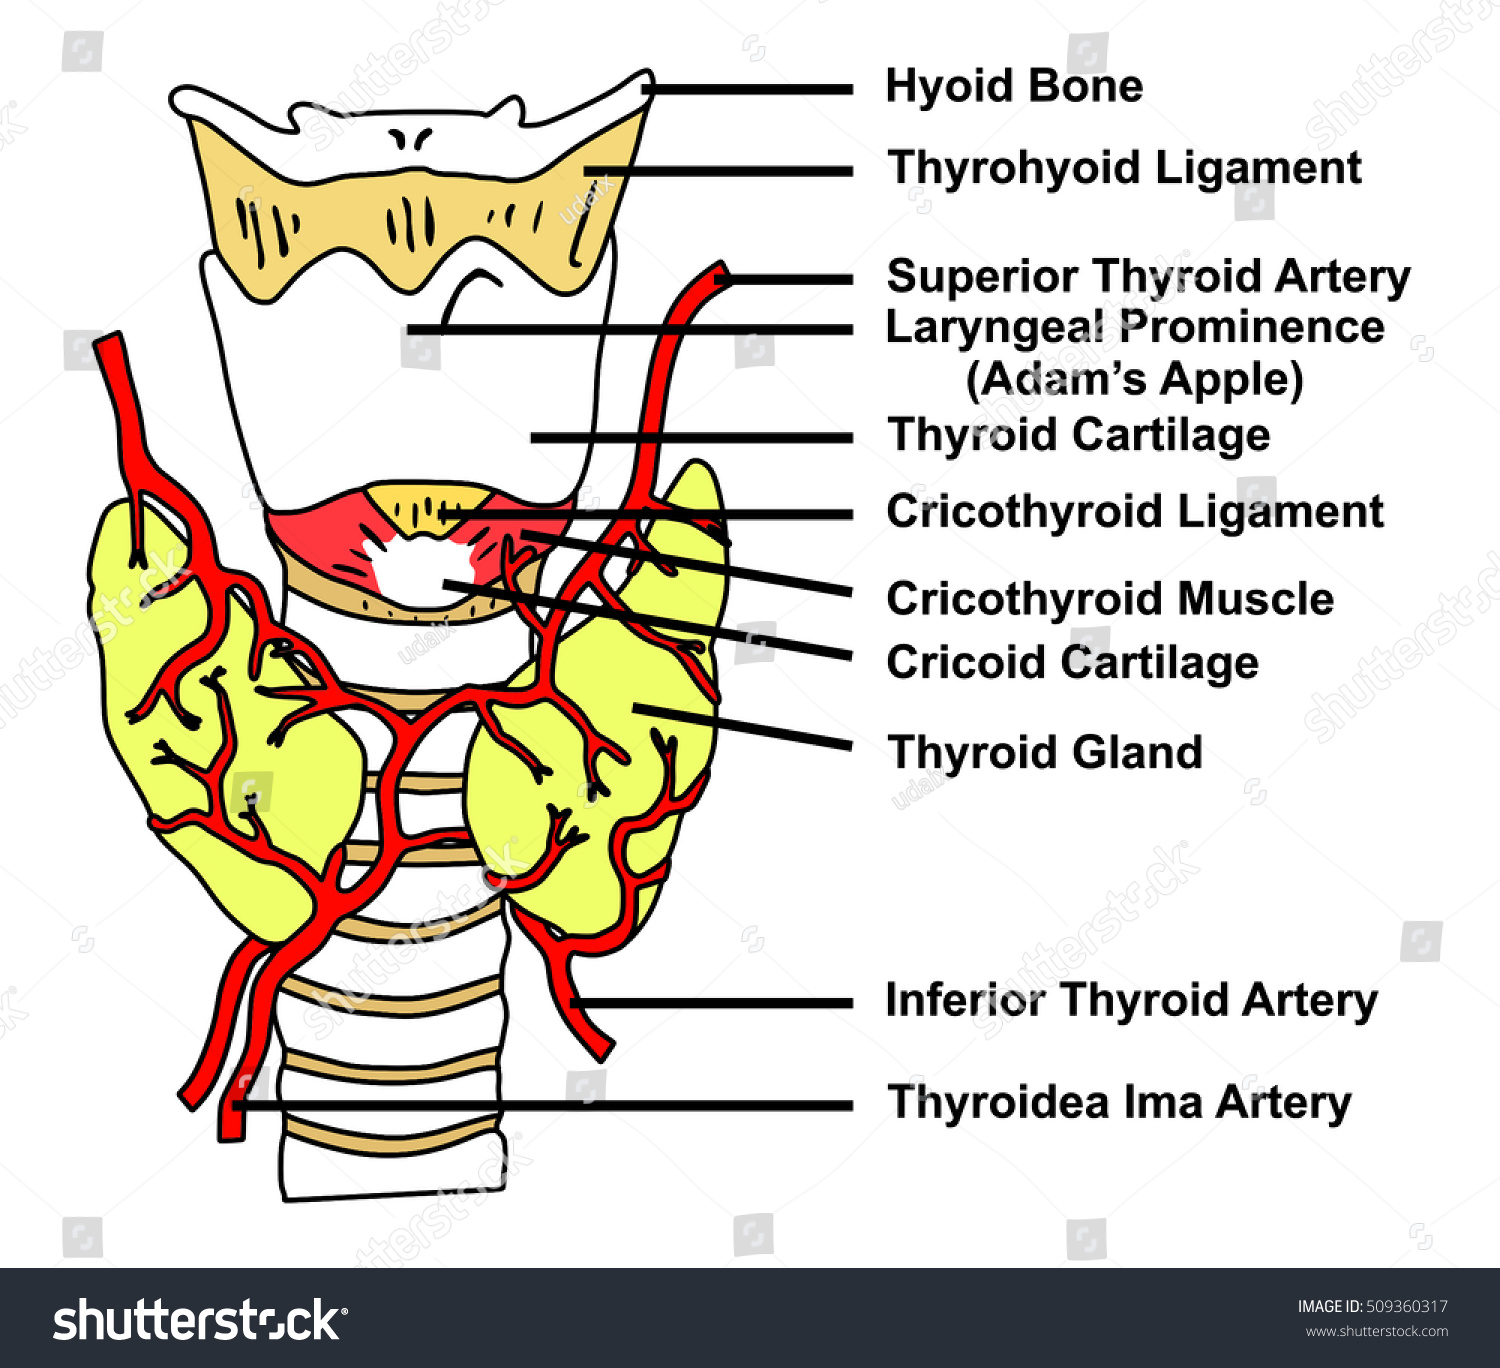 hight resolution of thyroid gland anatomical structure arteries supply diagram of all parts hyoid bone